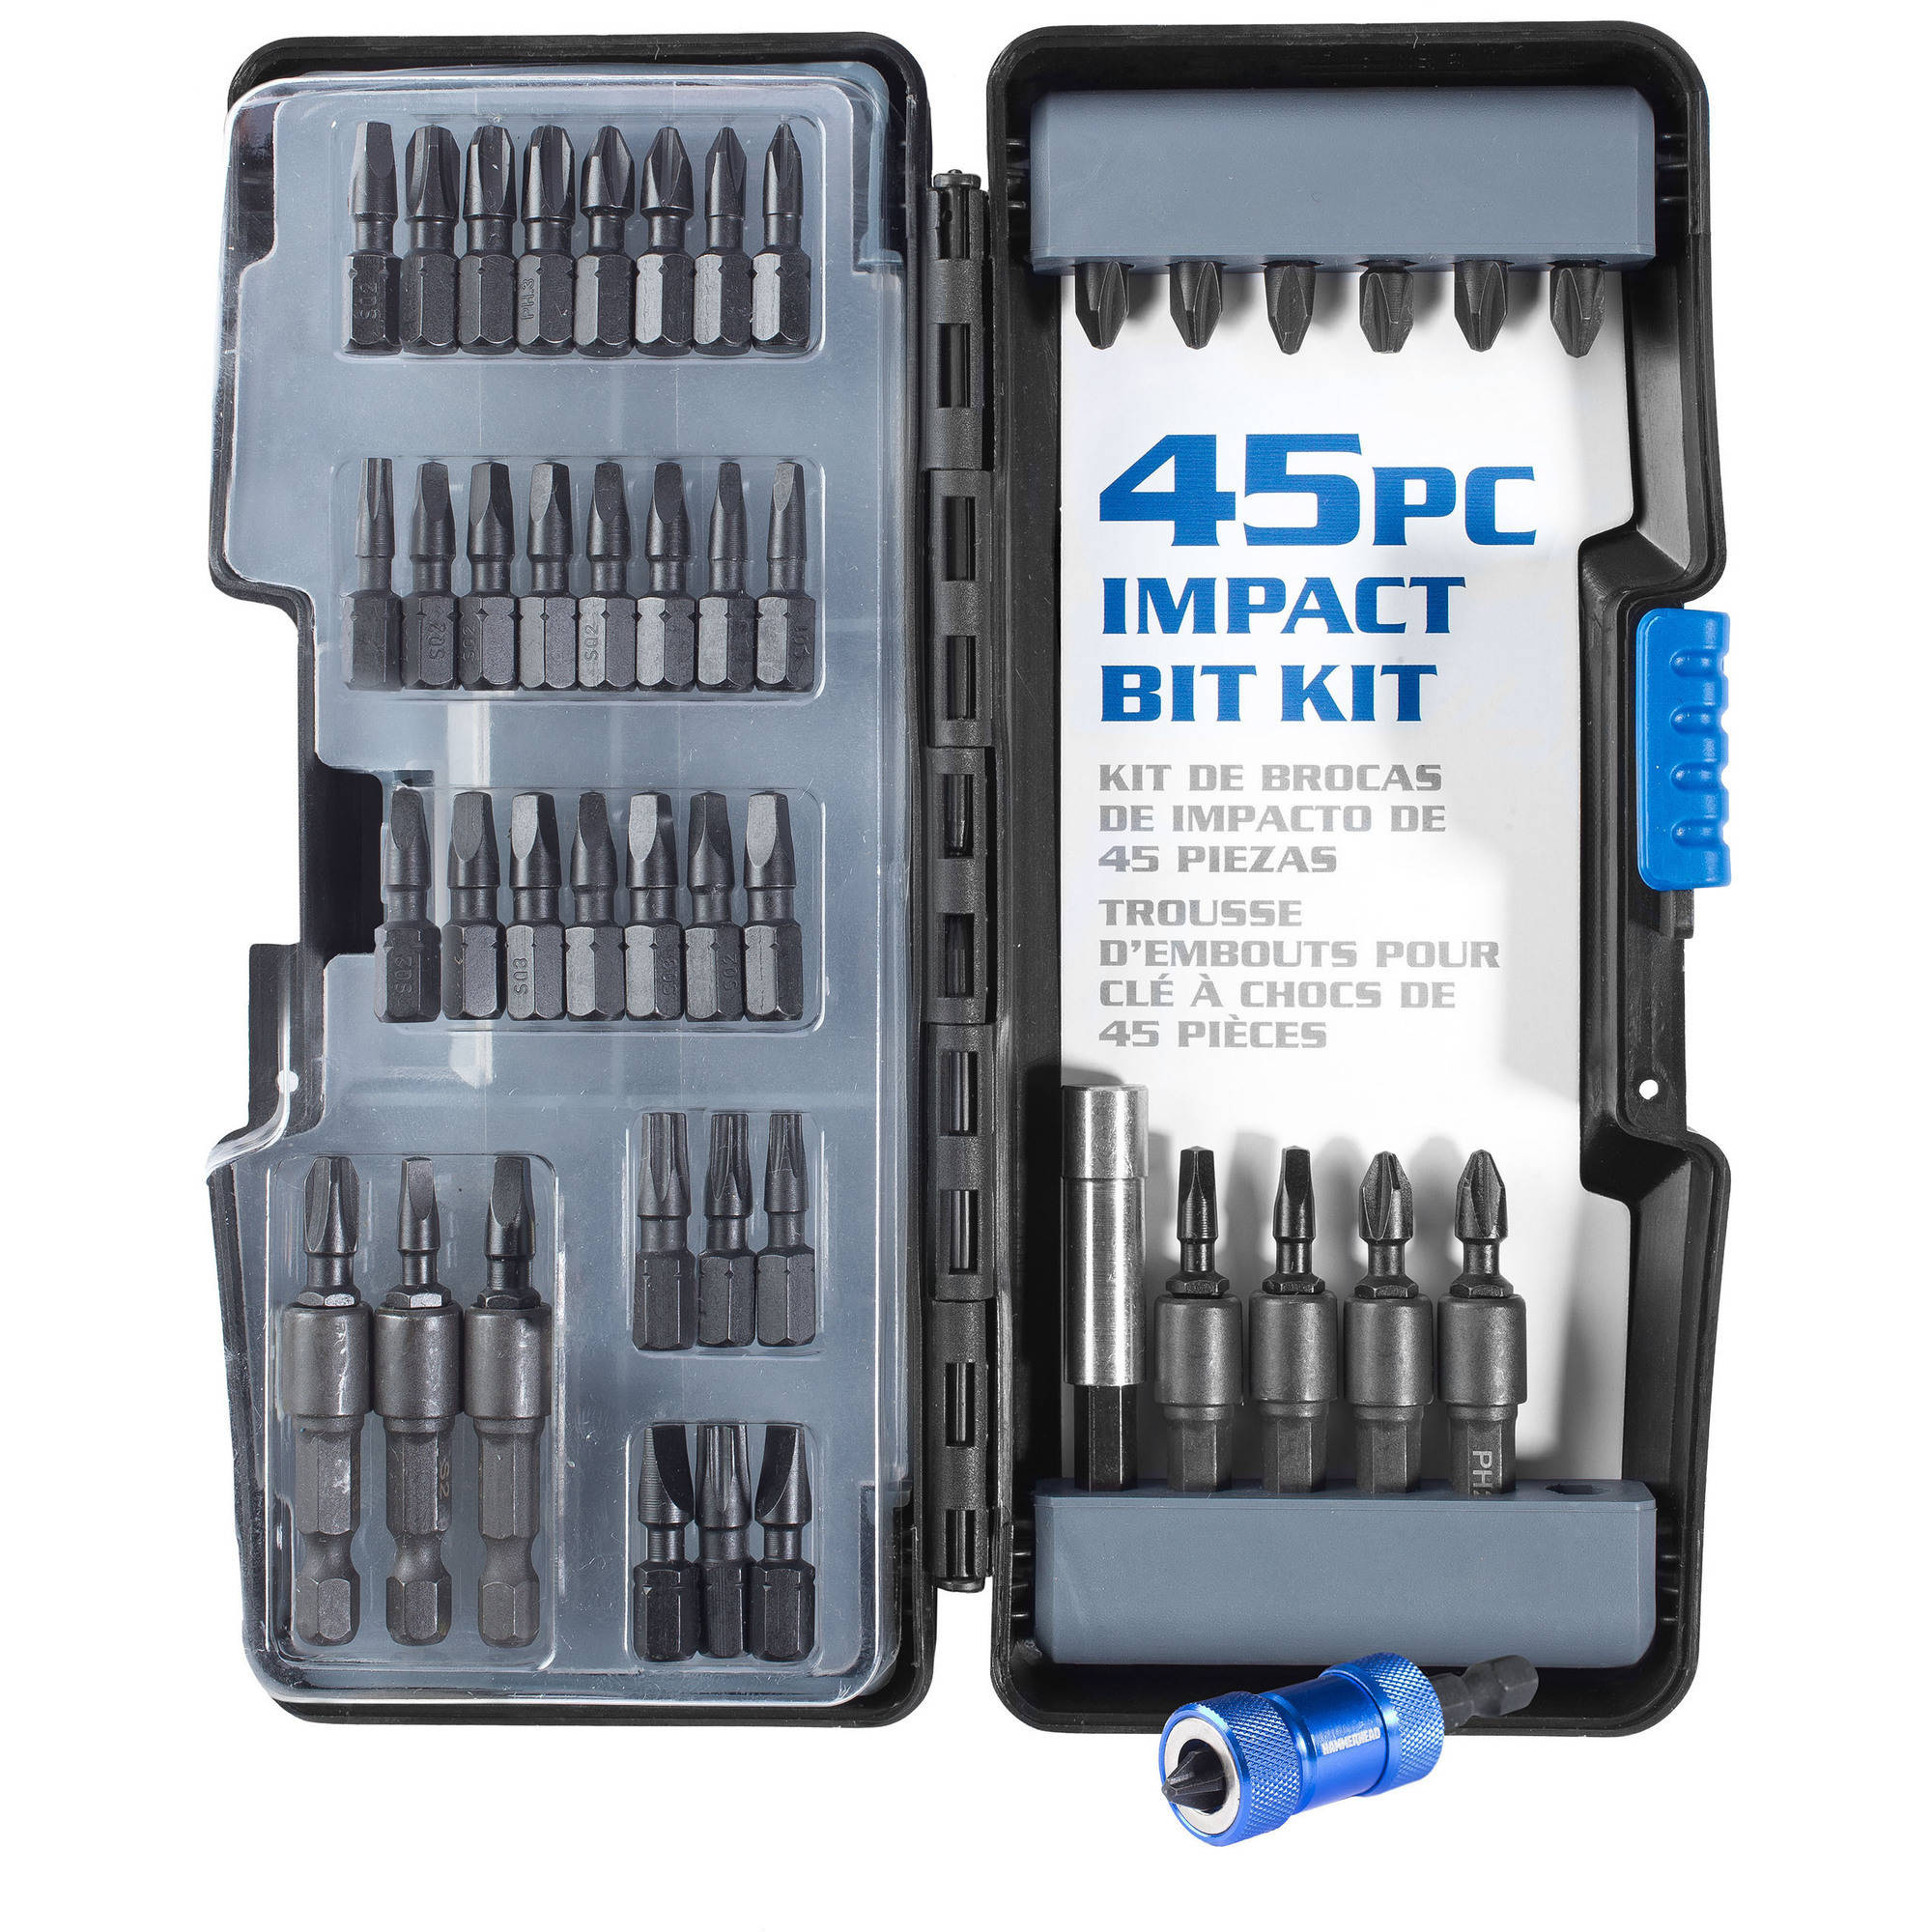 Hammerhead 45pc Impact Bit Kit